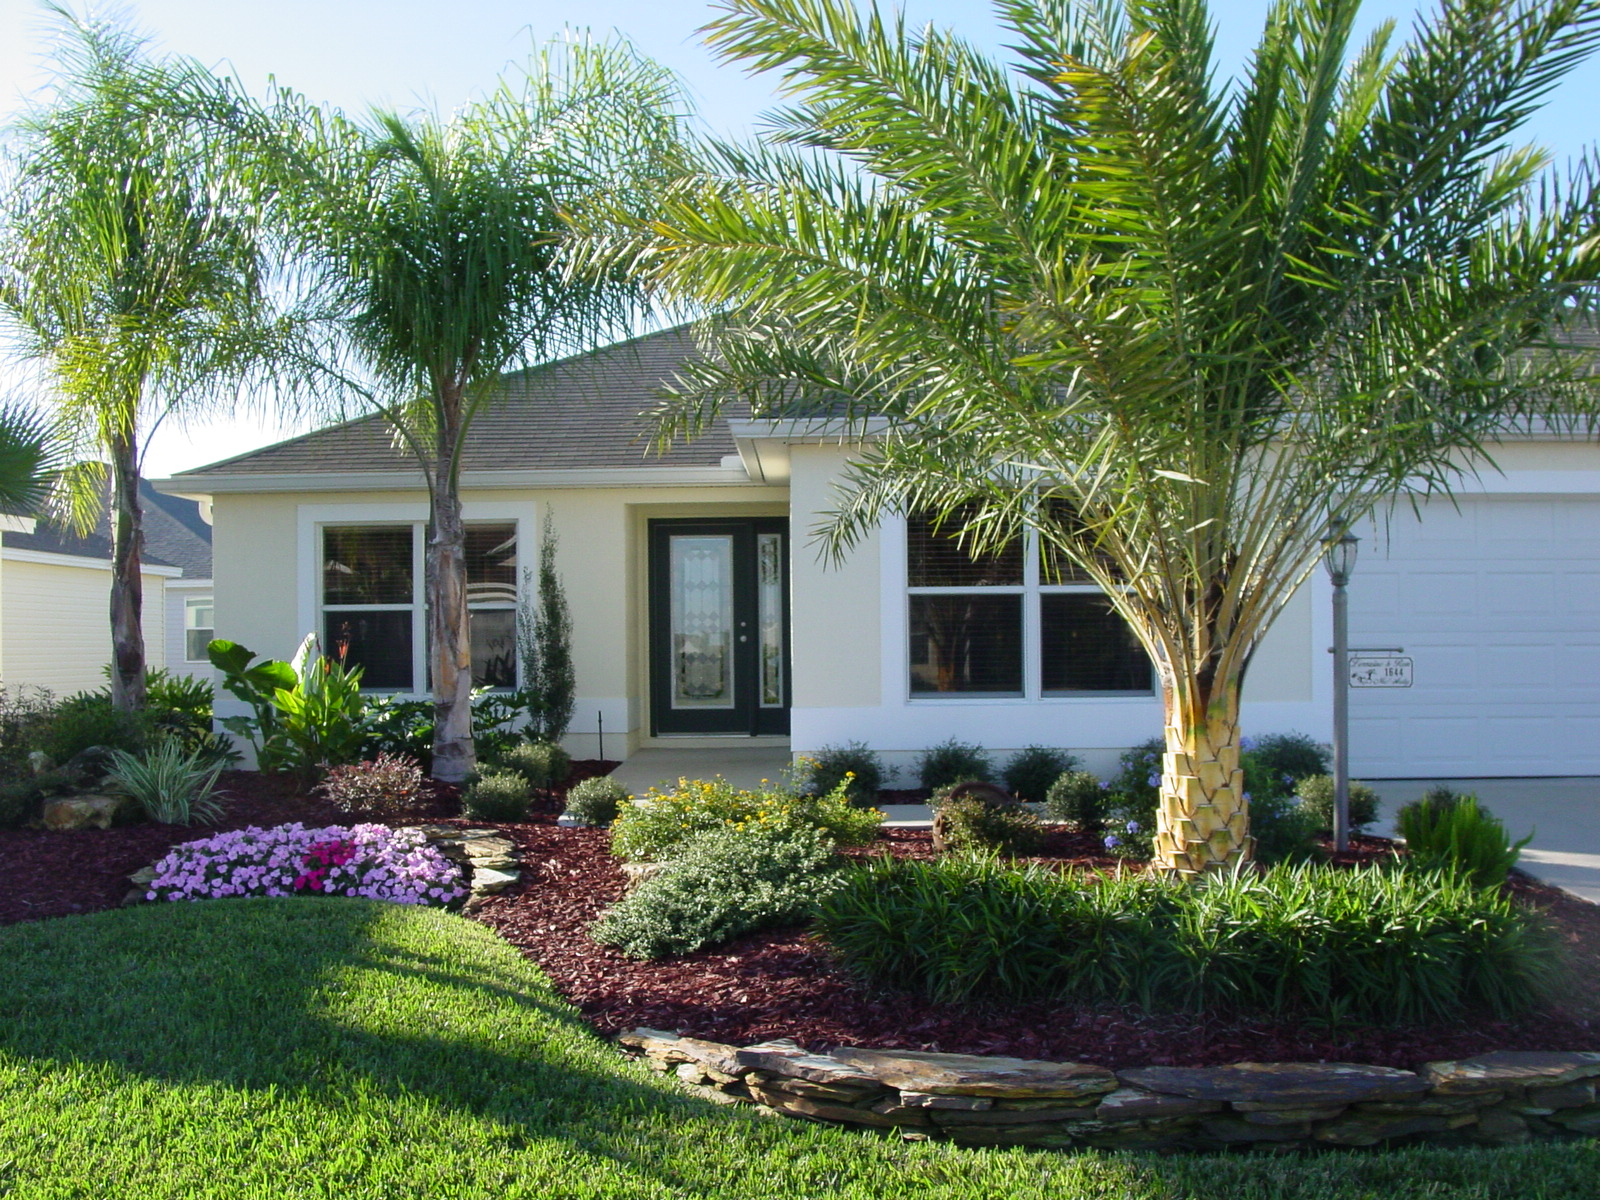 Florida garden landscape ideas photograph rons landscaping for Home front garden ideas